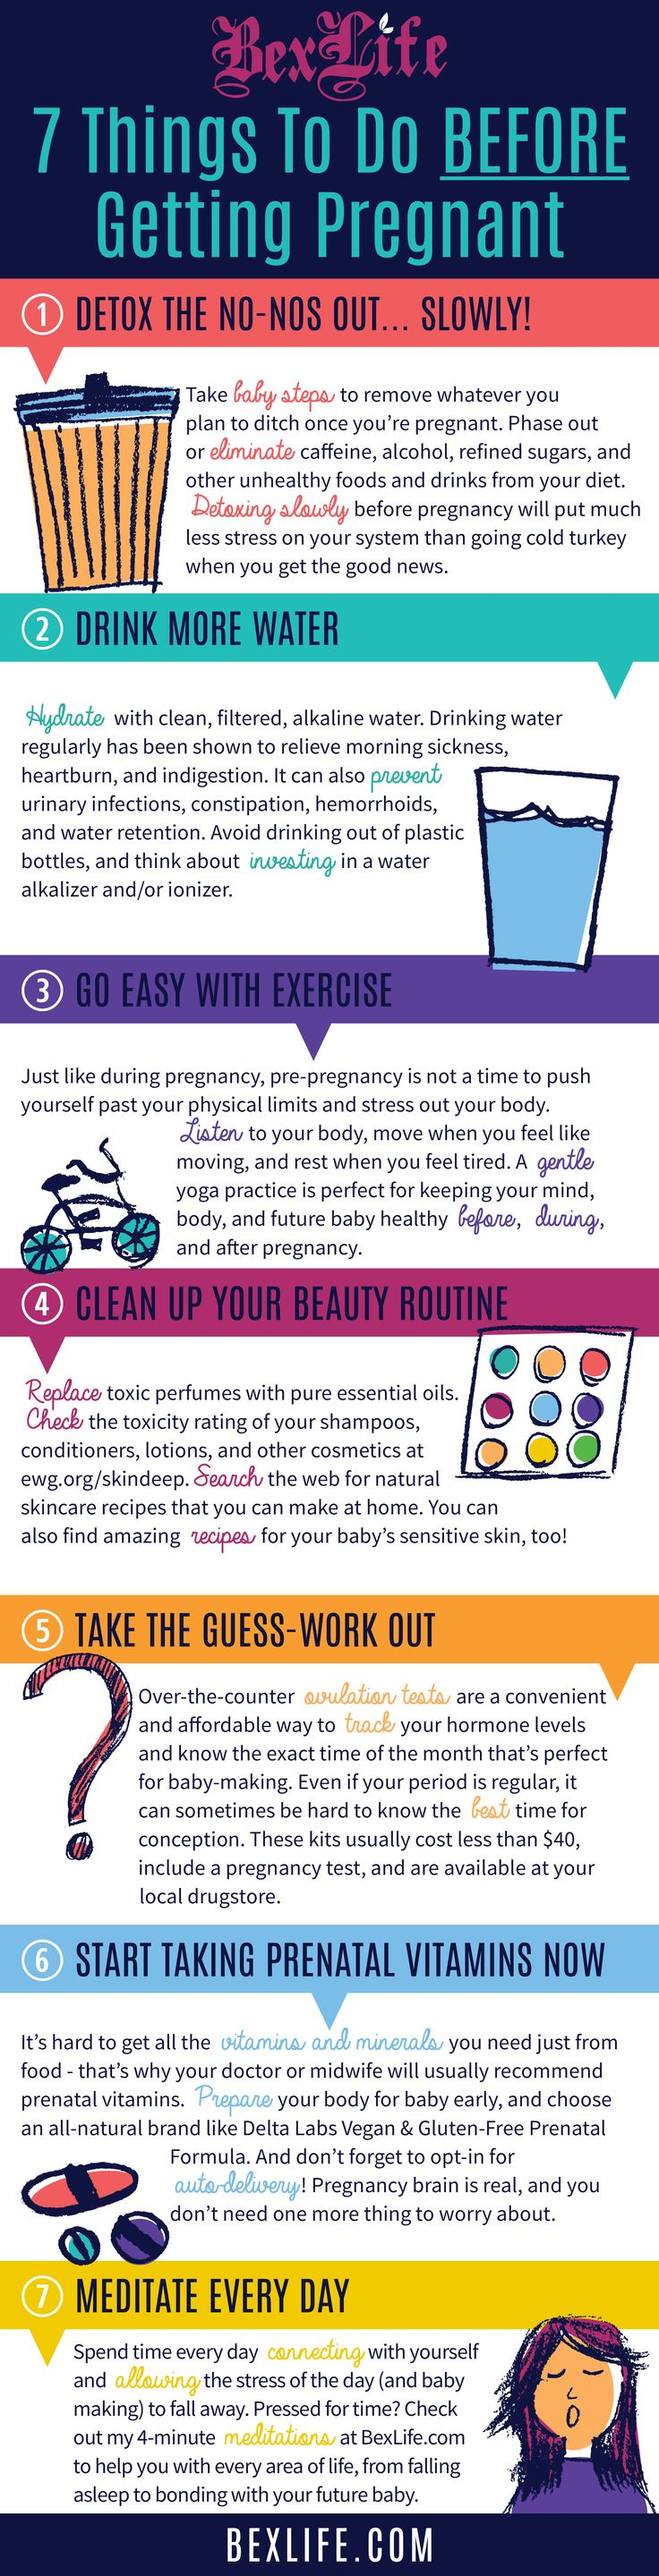 http://get-healthpregnant.blogspot.com/2013/04/signs-pregnancy-week-by-week-symptoms.html 7 Things To Do Before Getting Pregnant by BexLife